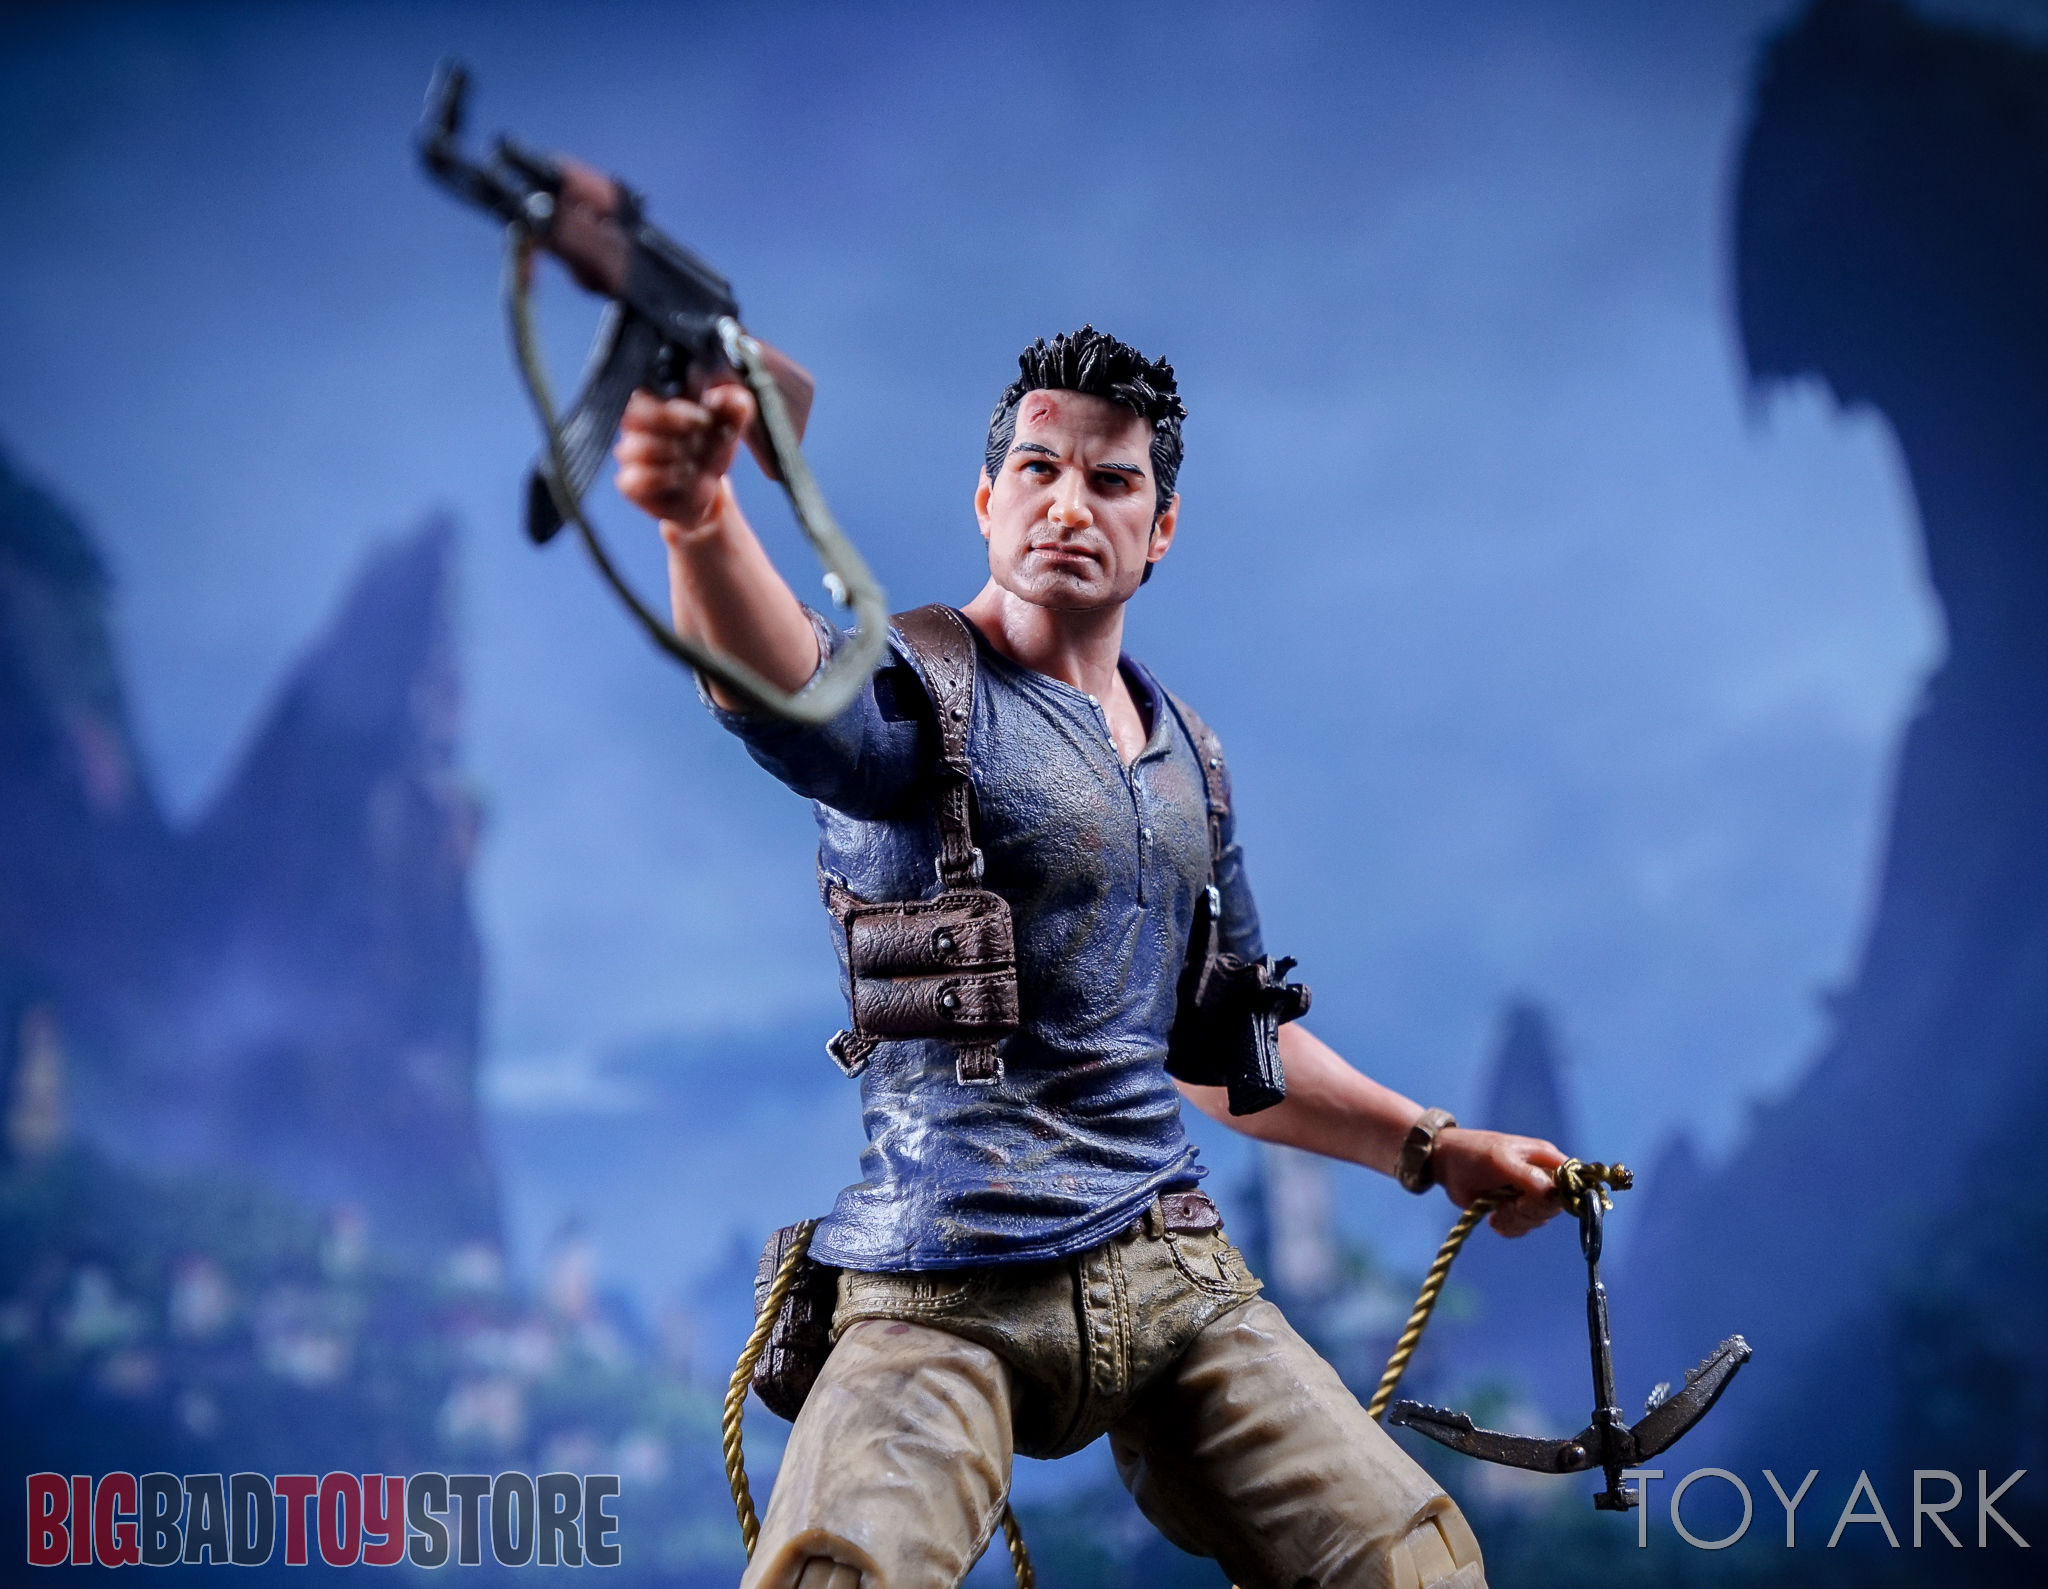 http://news.toyark.com/wp-content/uploads/sites/4/2016/09/NECA-Uncharted-4-Nathan-Drake-050.jpg